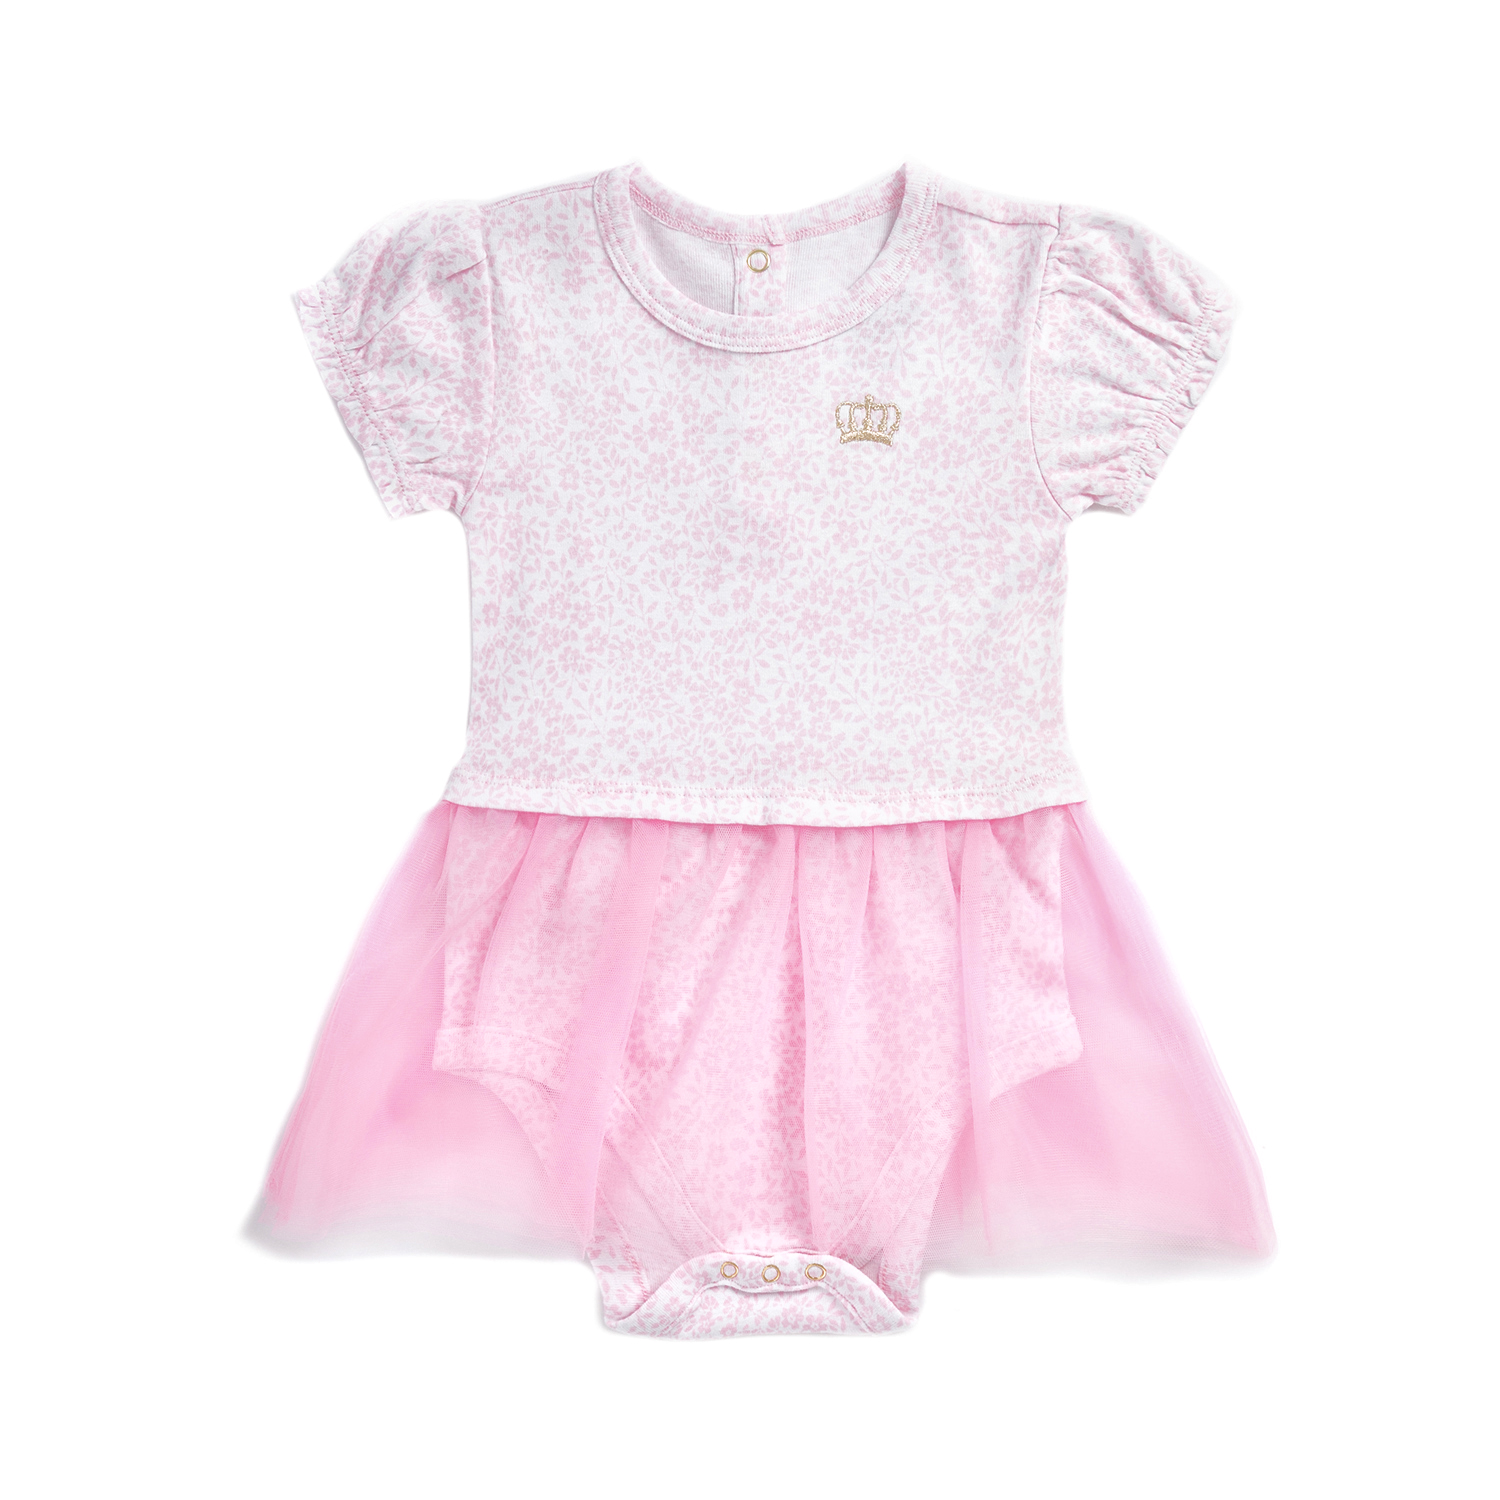 b5bfb72f74a -50% JUICY COUTURE KIDS – Φορμάκι με τουτού JUICY COUTURE DELICATE FLORAL  NOVELTY ροζ με φλοράλ μοτίβο